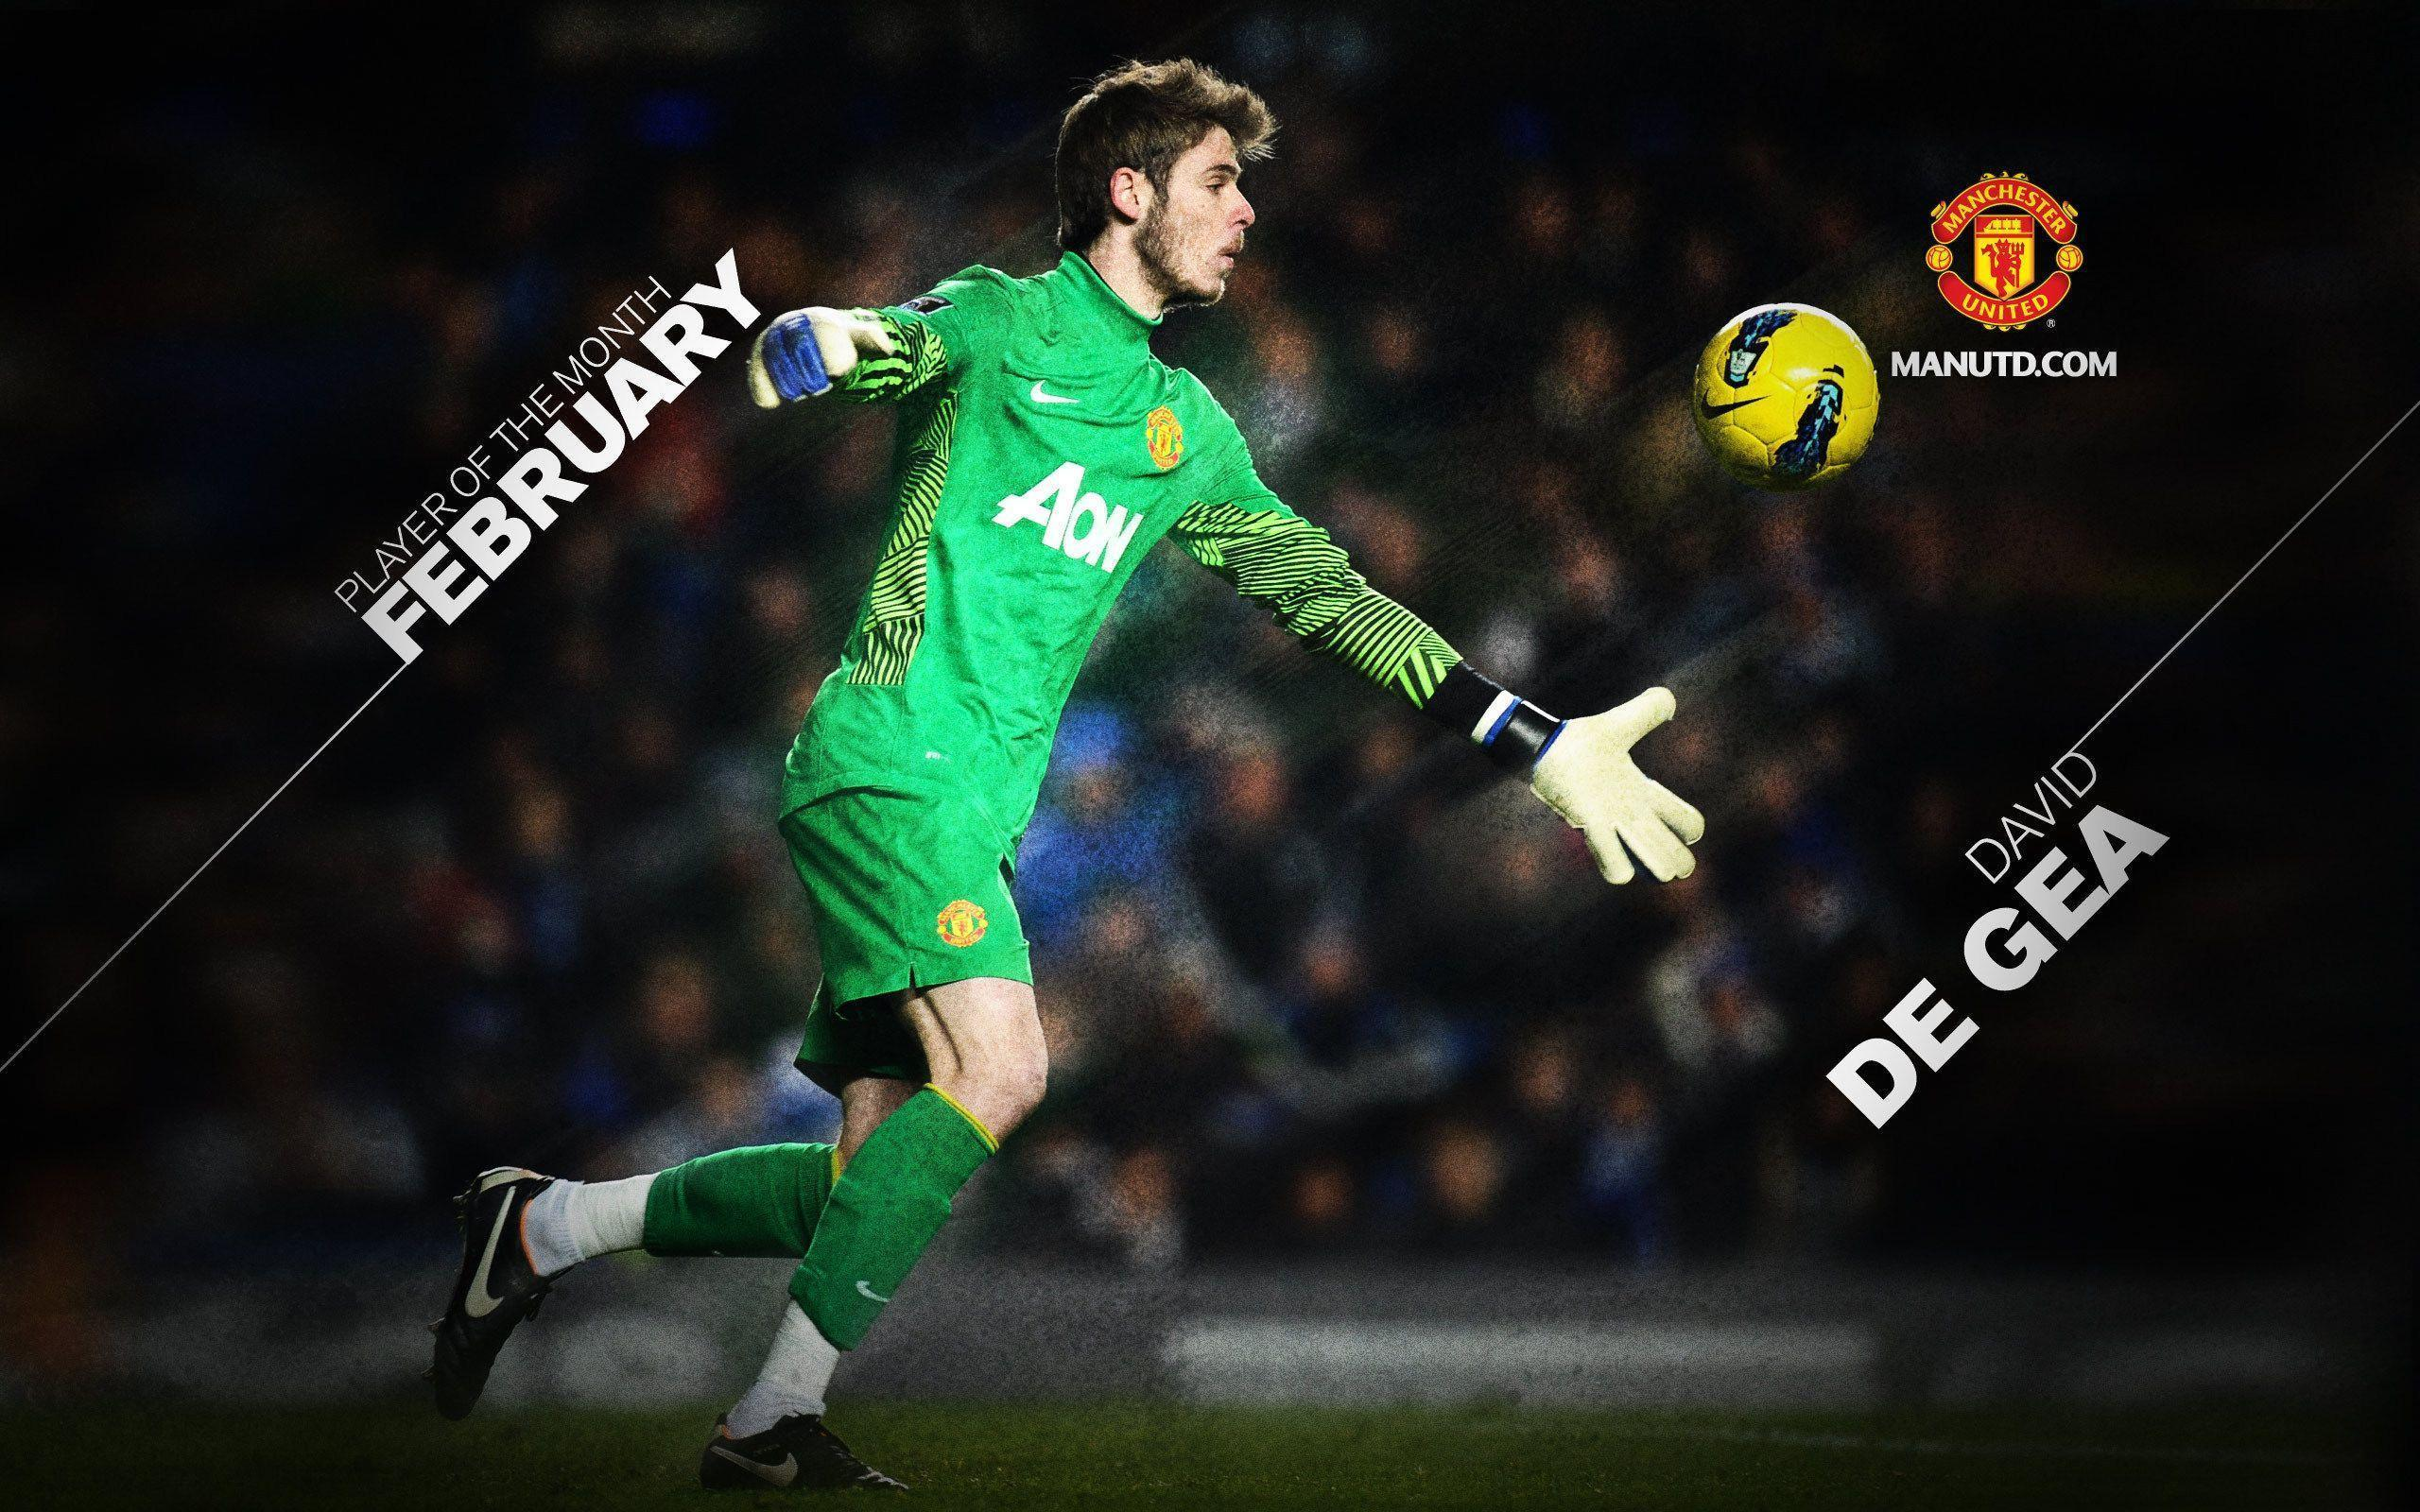 Goalkeepers Wallpapers - Wallpaper Cave